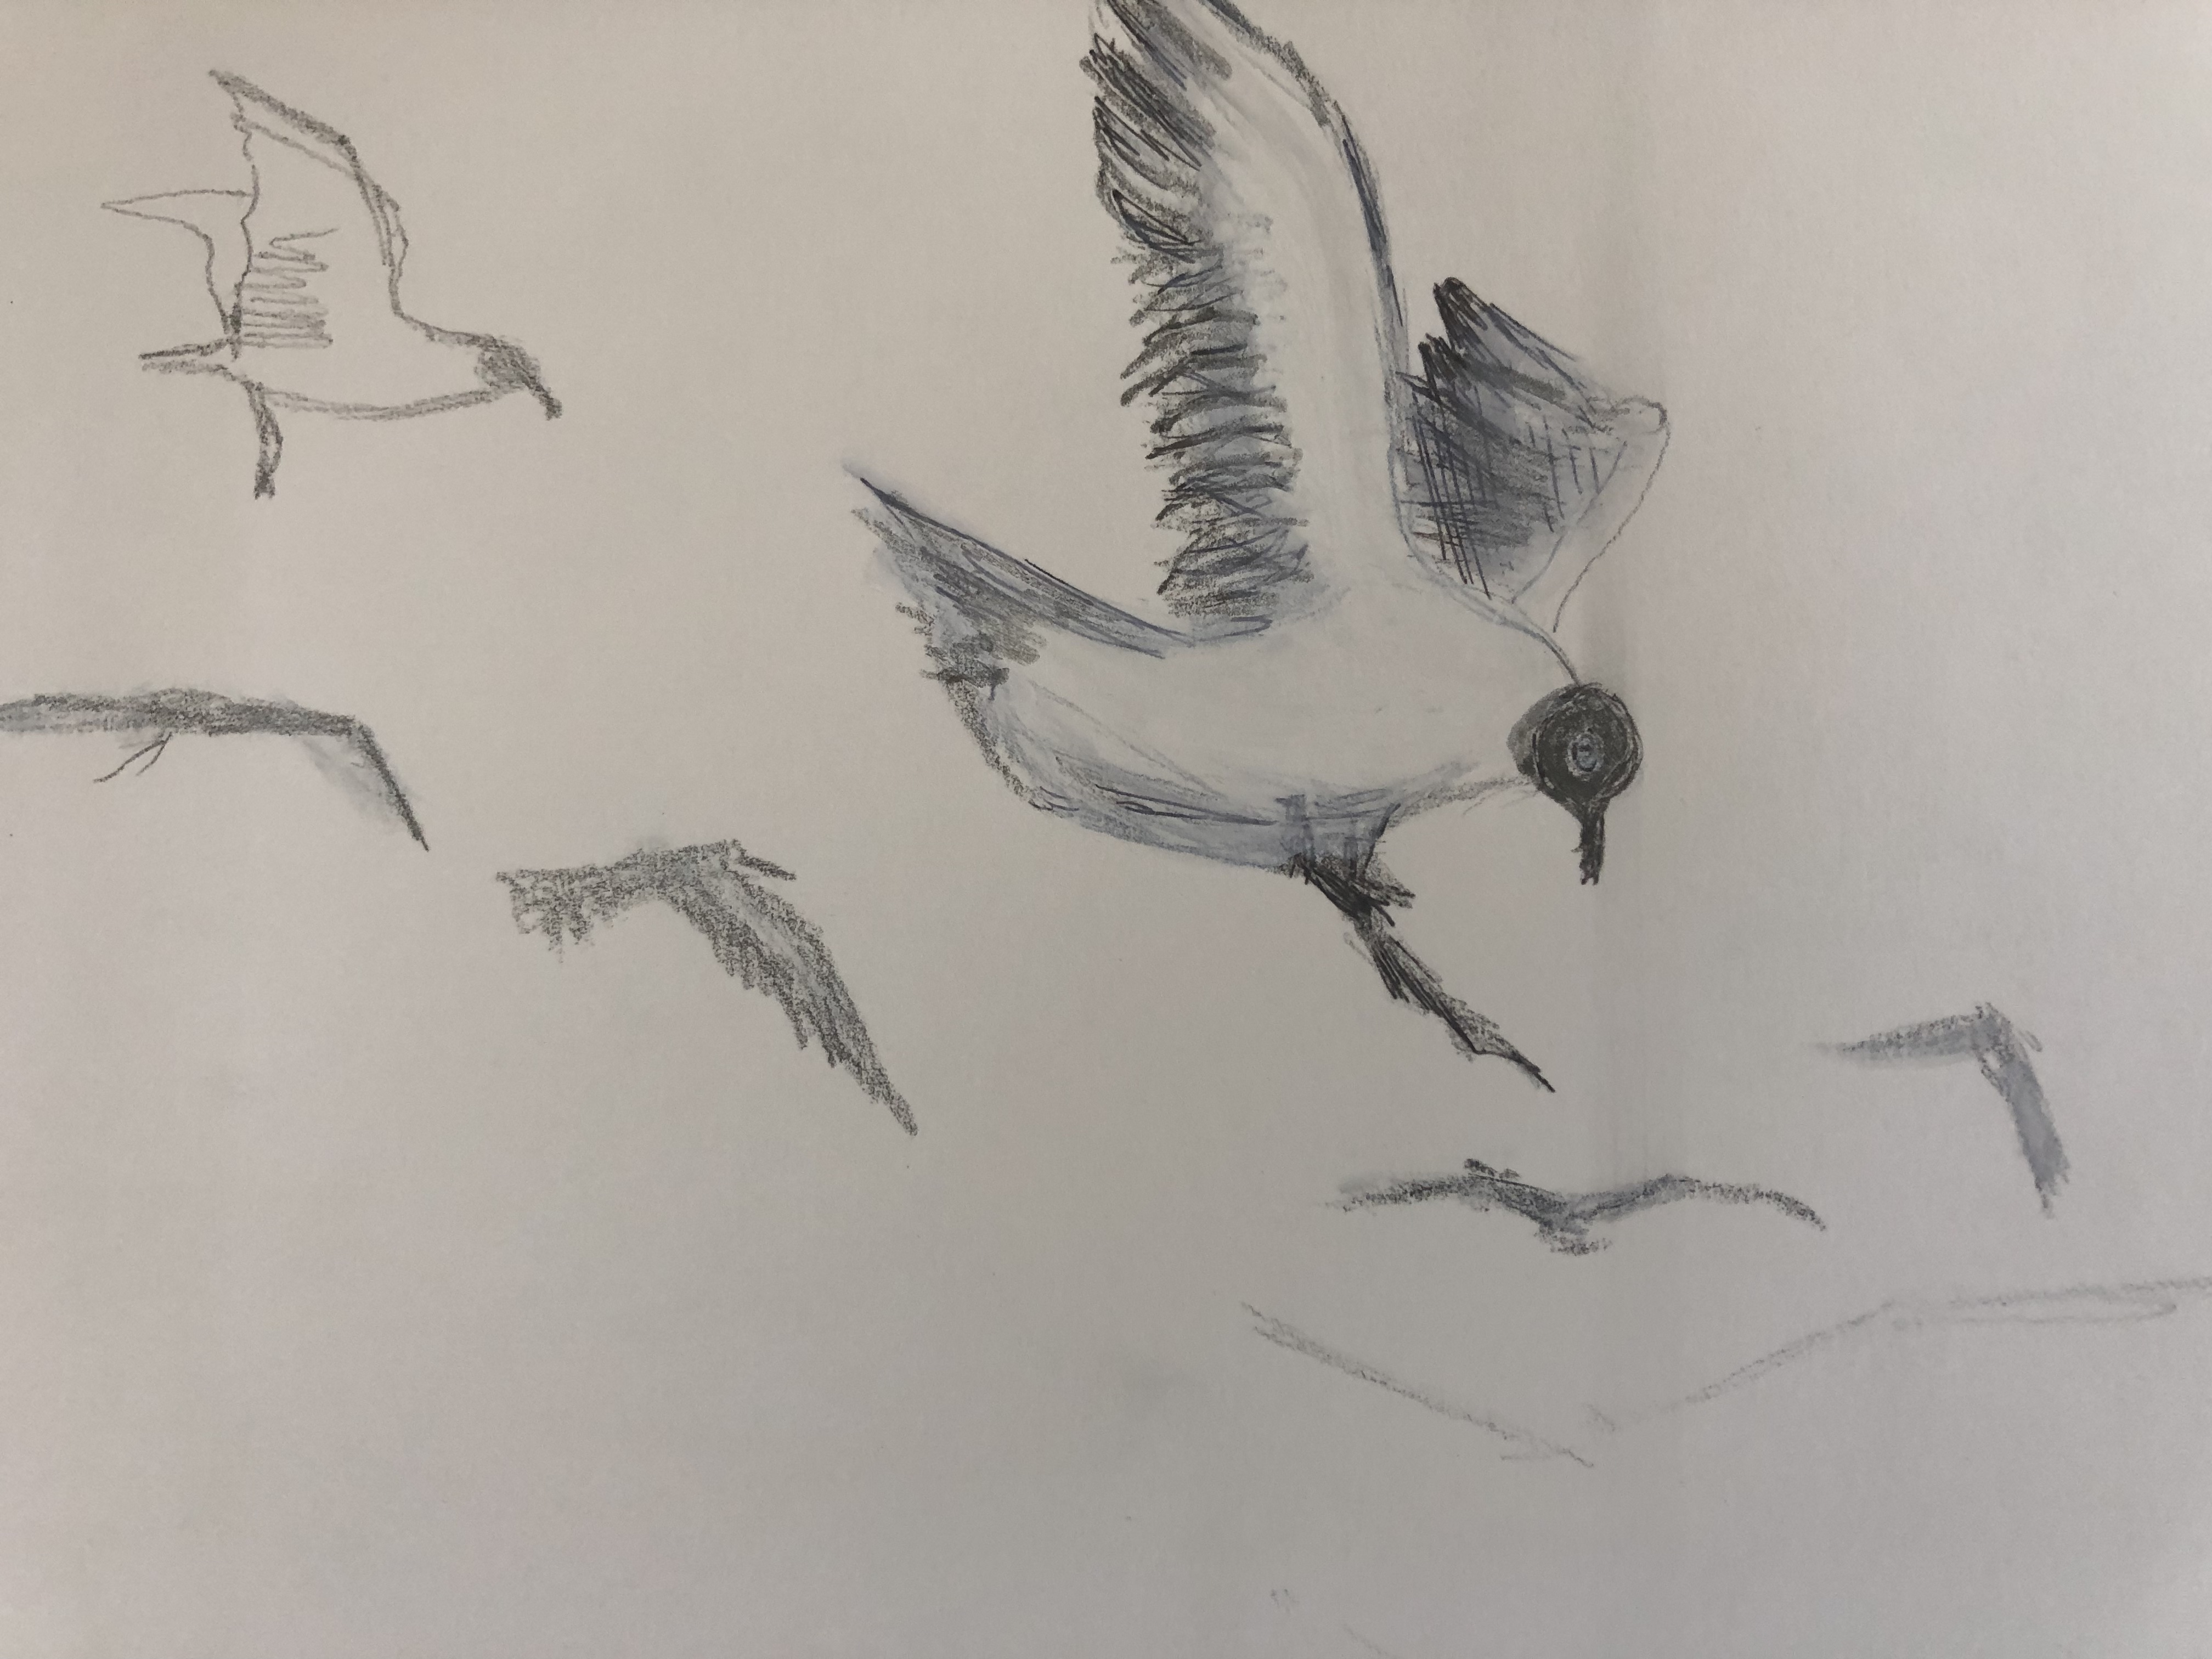 ink gulls forming patterns